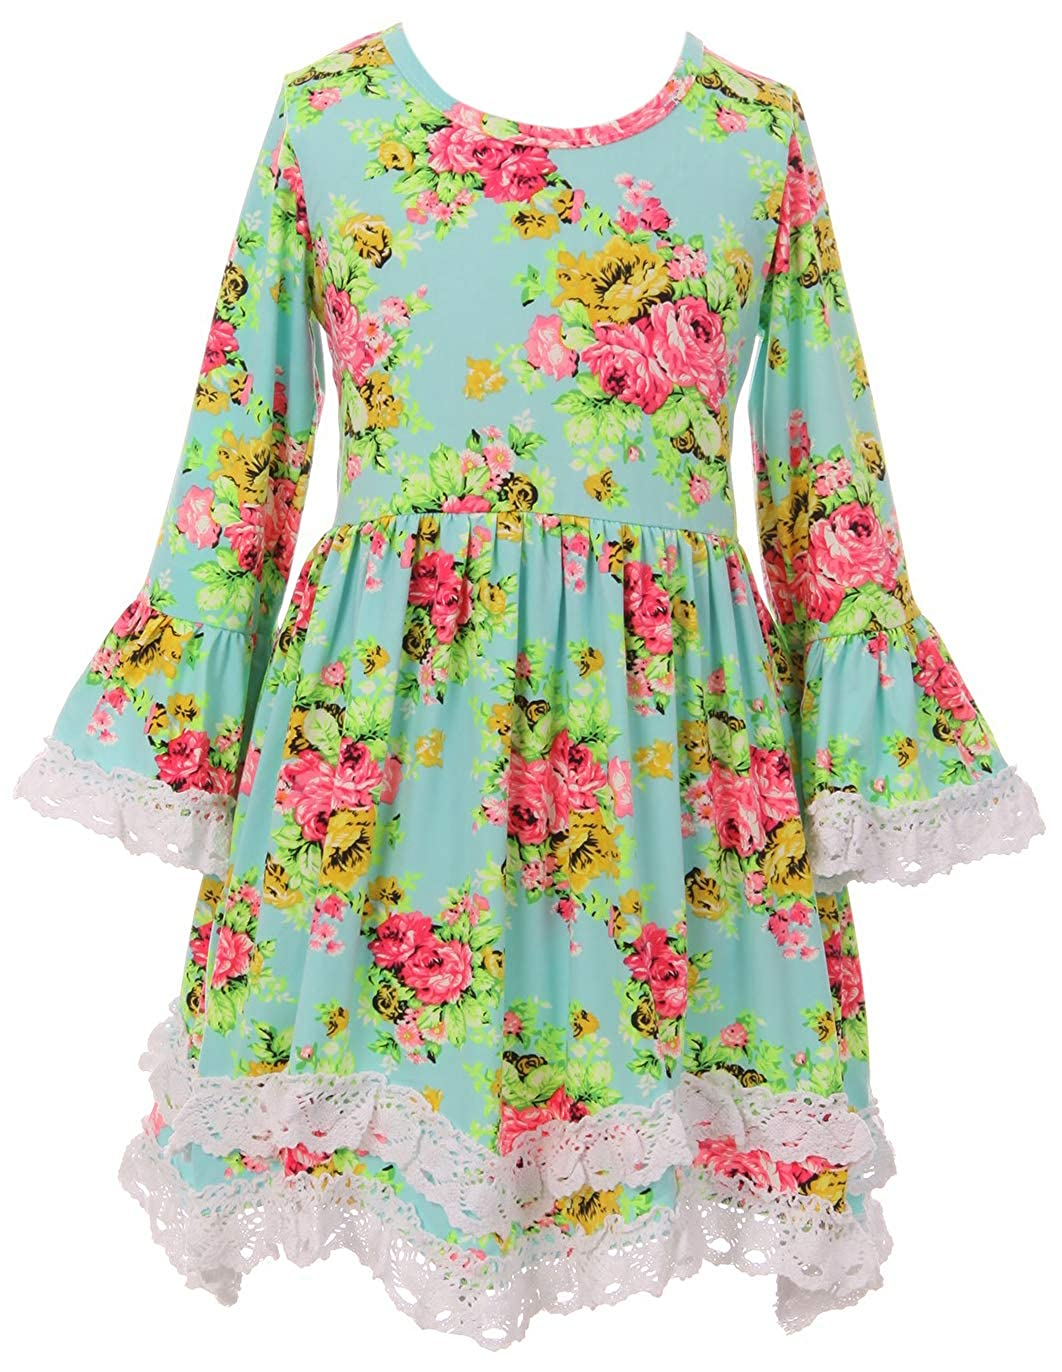 a68ae200b19 Amazon.com  Little Girls Lovely Floral Birthday Party School Holiday Flower  Girl Dress 2T-8  Clothing